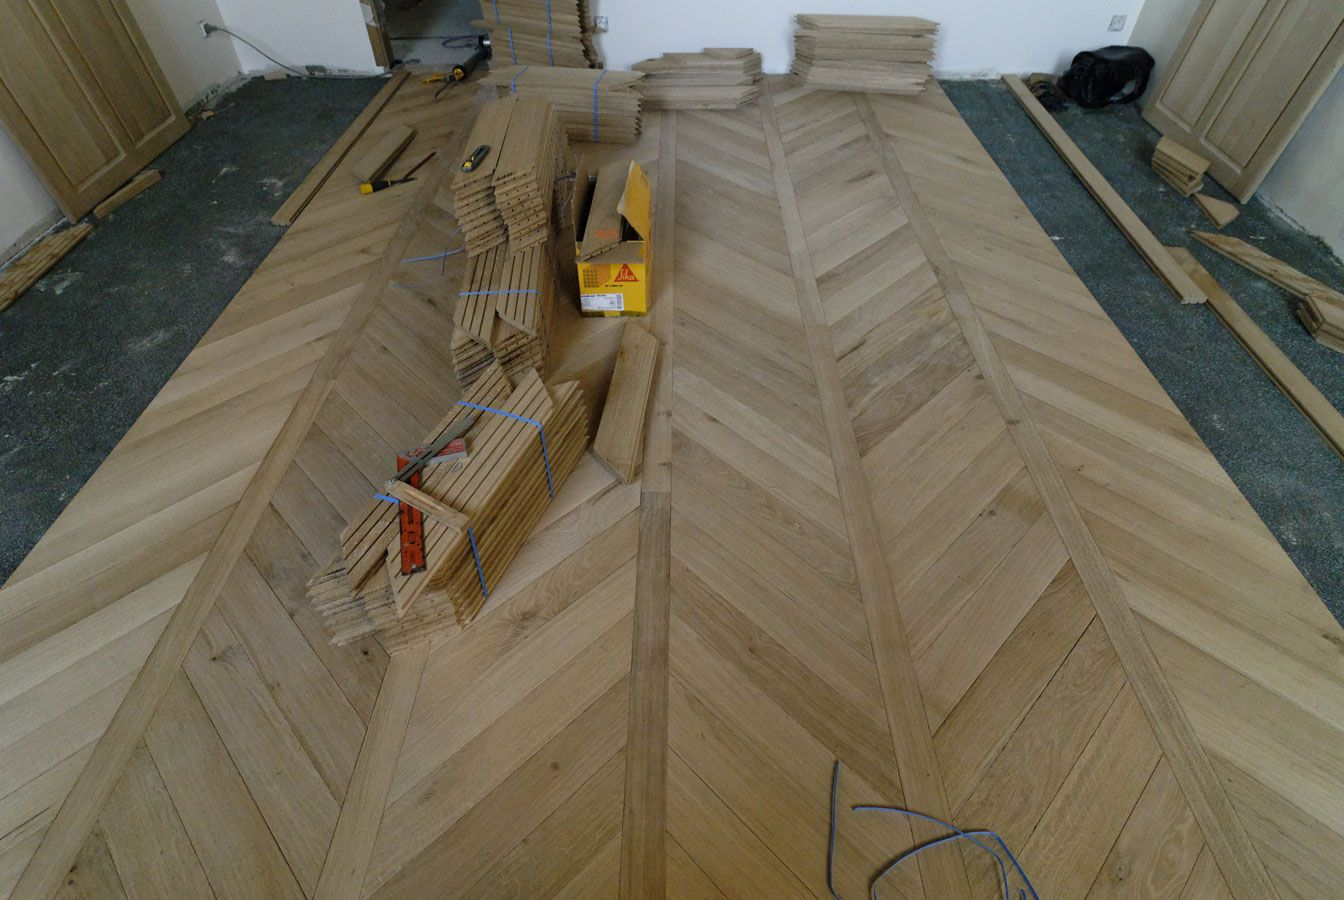 parquet chevron floor under construction inspire. Black Bedroom Furniture Sets. Home Design Ideas